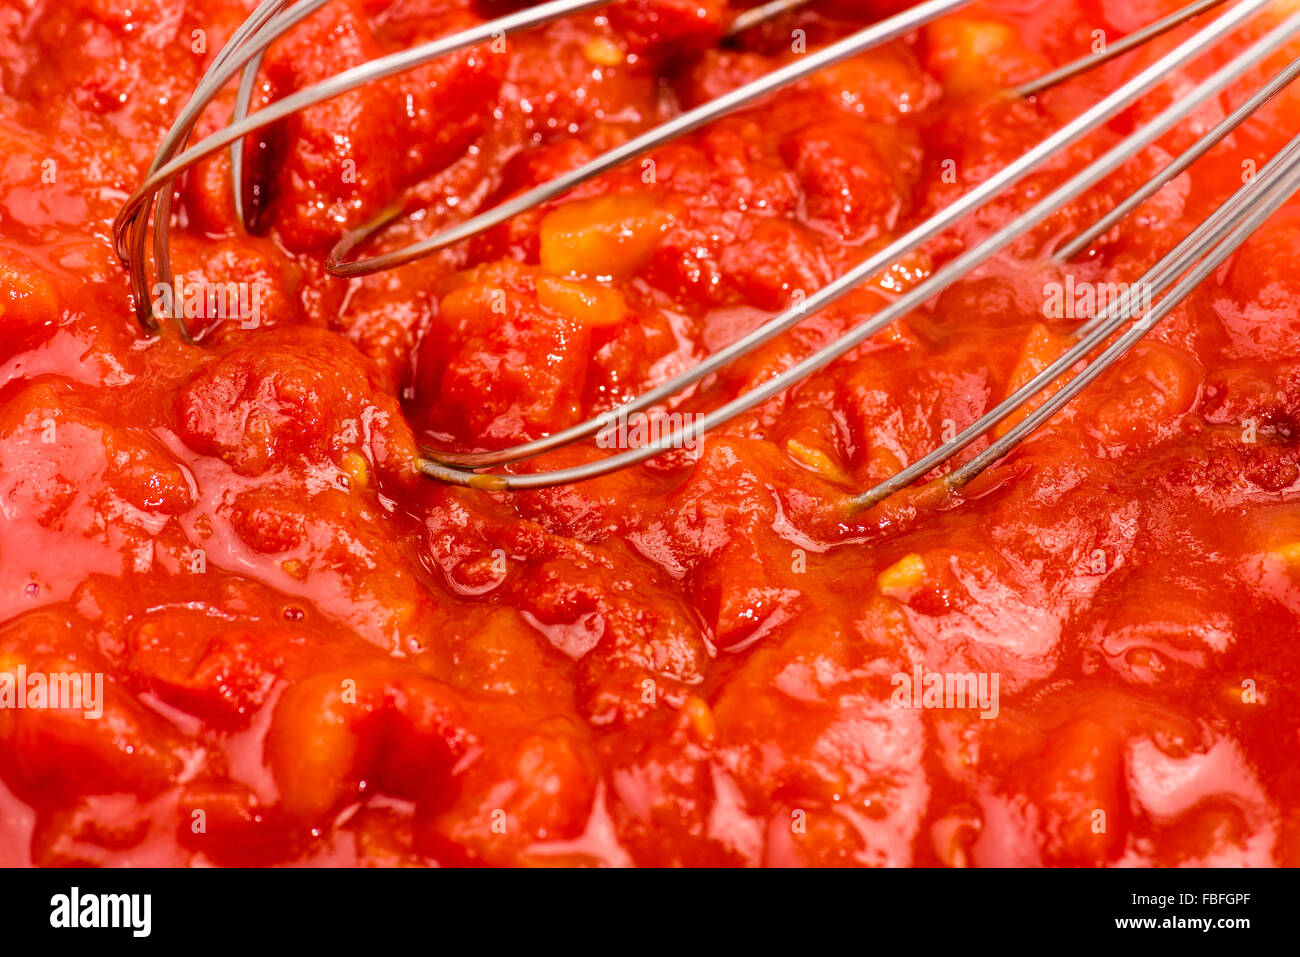 tomato puree and tomato paste, Italian cooking, fruit, red, smashed, tasty, in the Bowl, verrürt, soggy, mud, - Stock Image